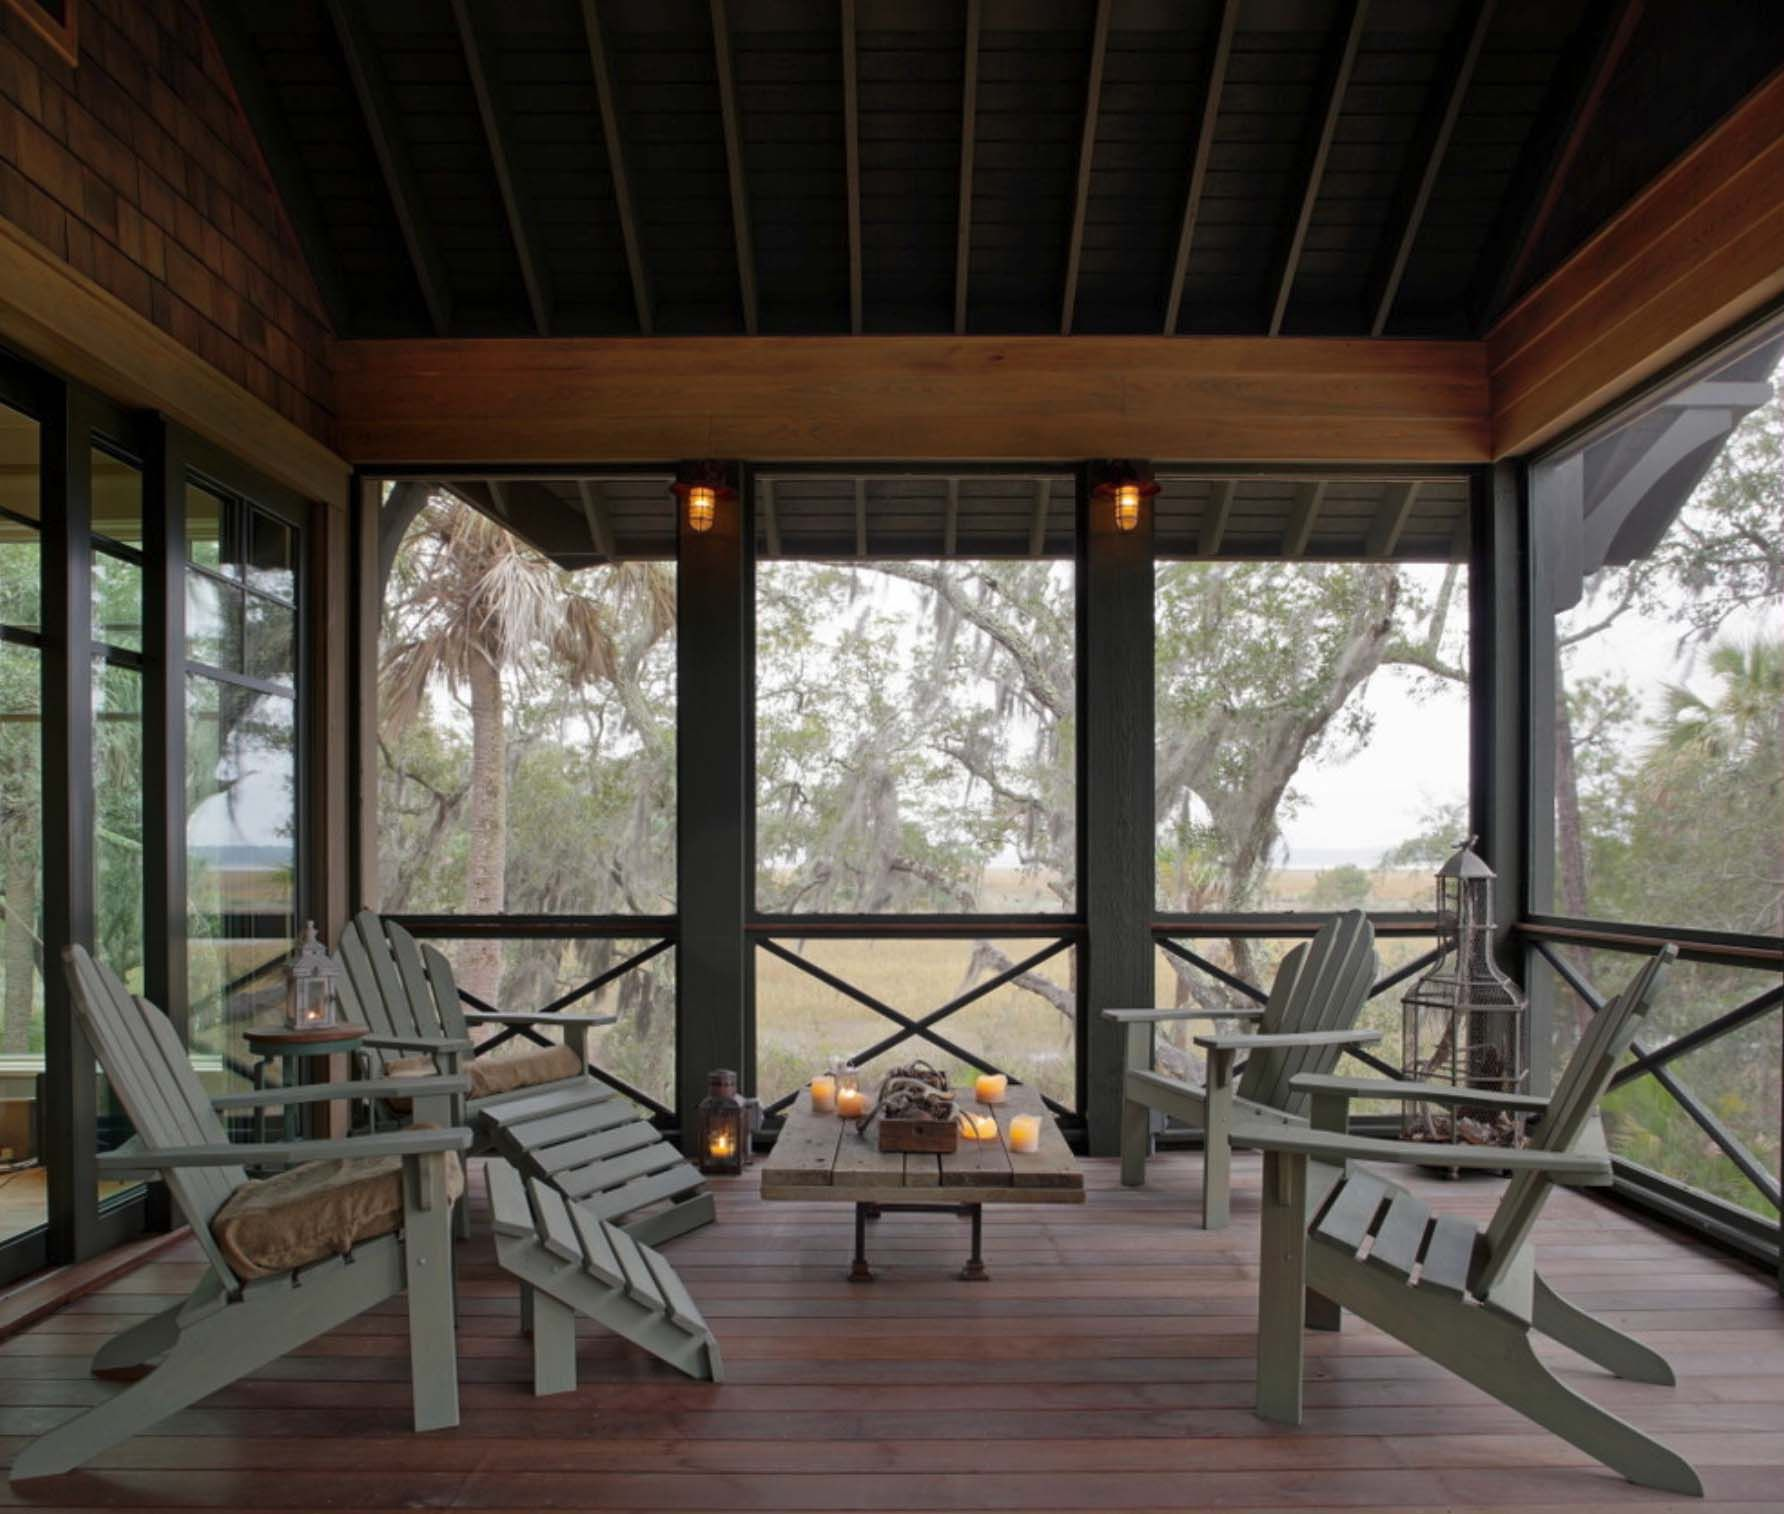 45 Amazingly Cozy And Relaxing Screened Porch Design Ideas Screened In Porch Furniture House With Porch Screened Porch Designs